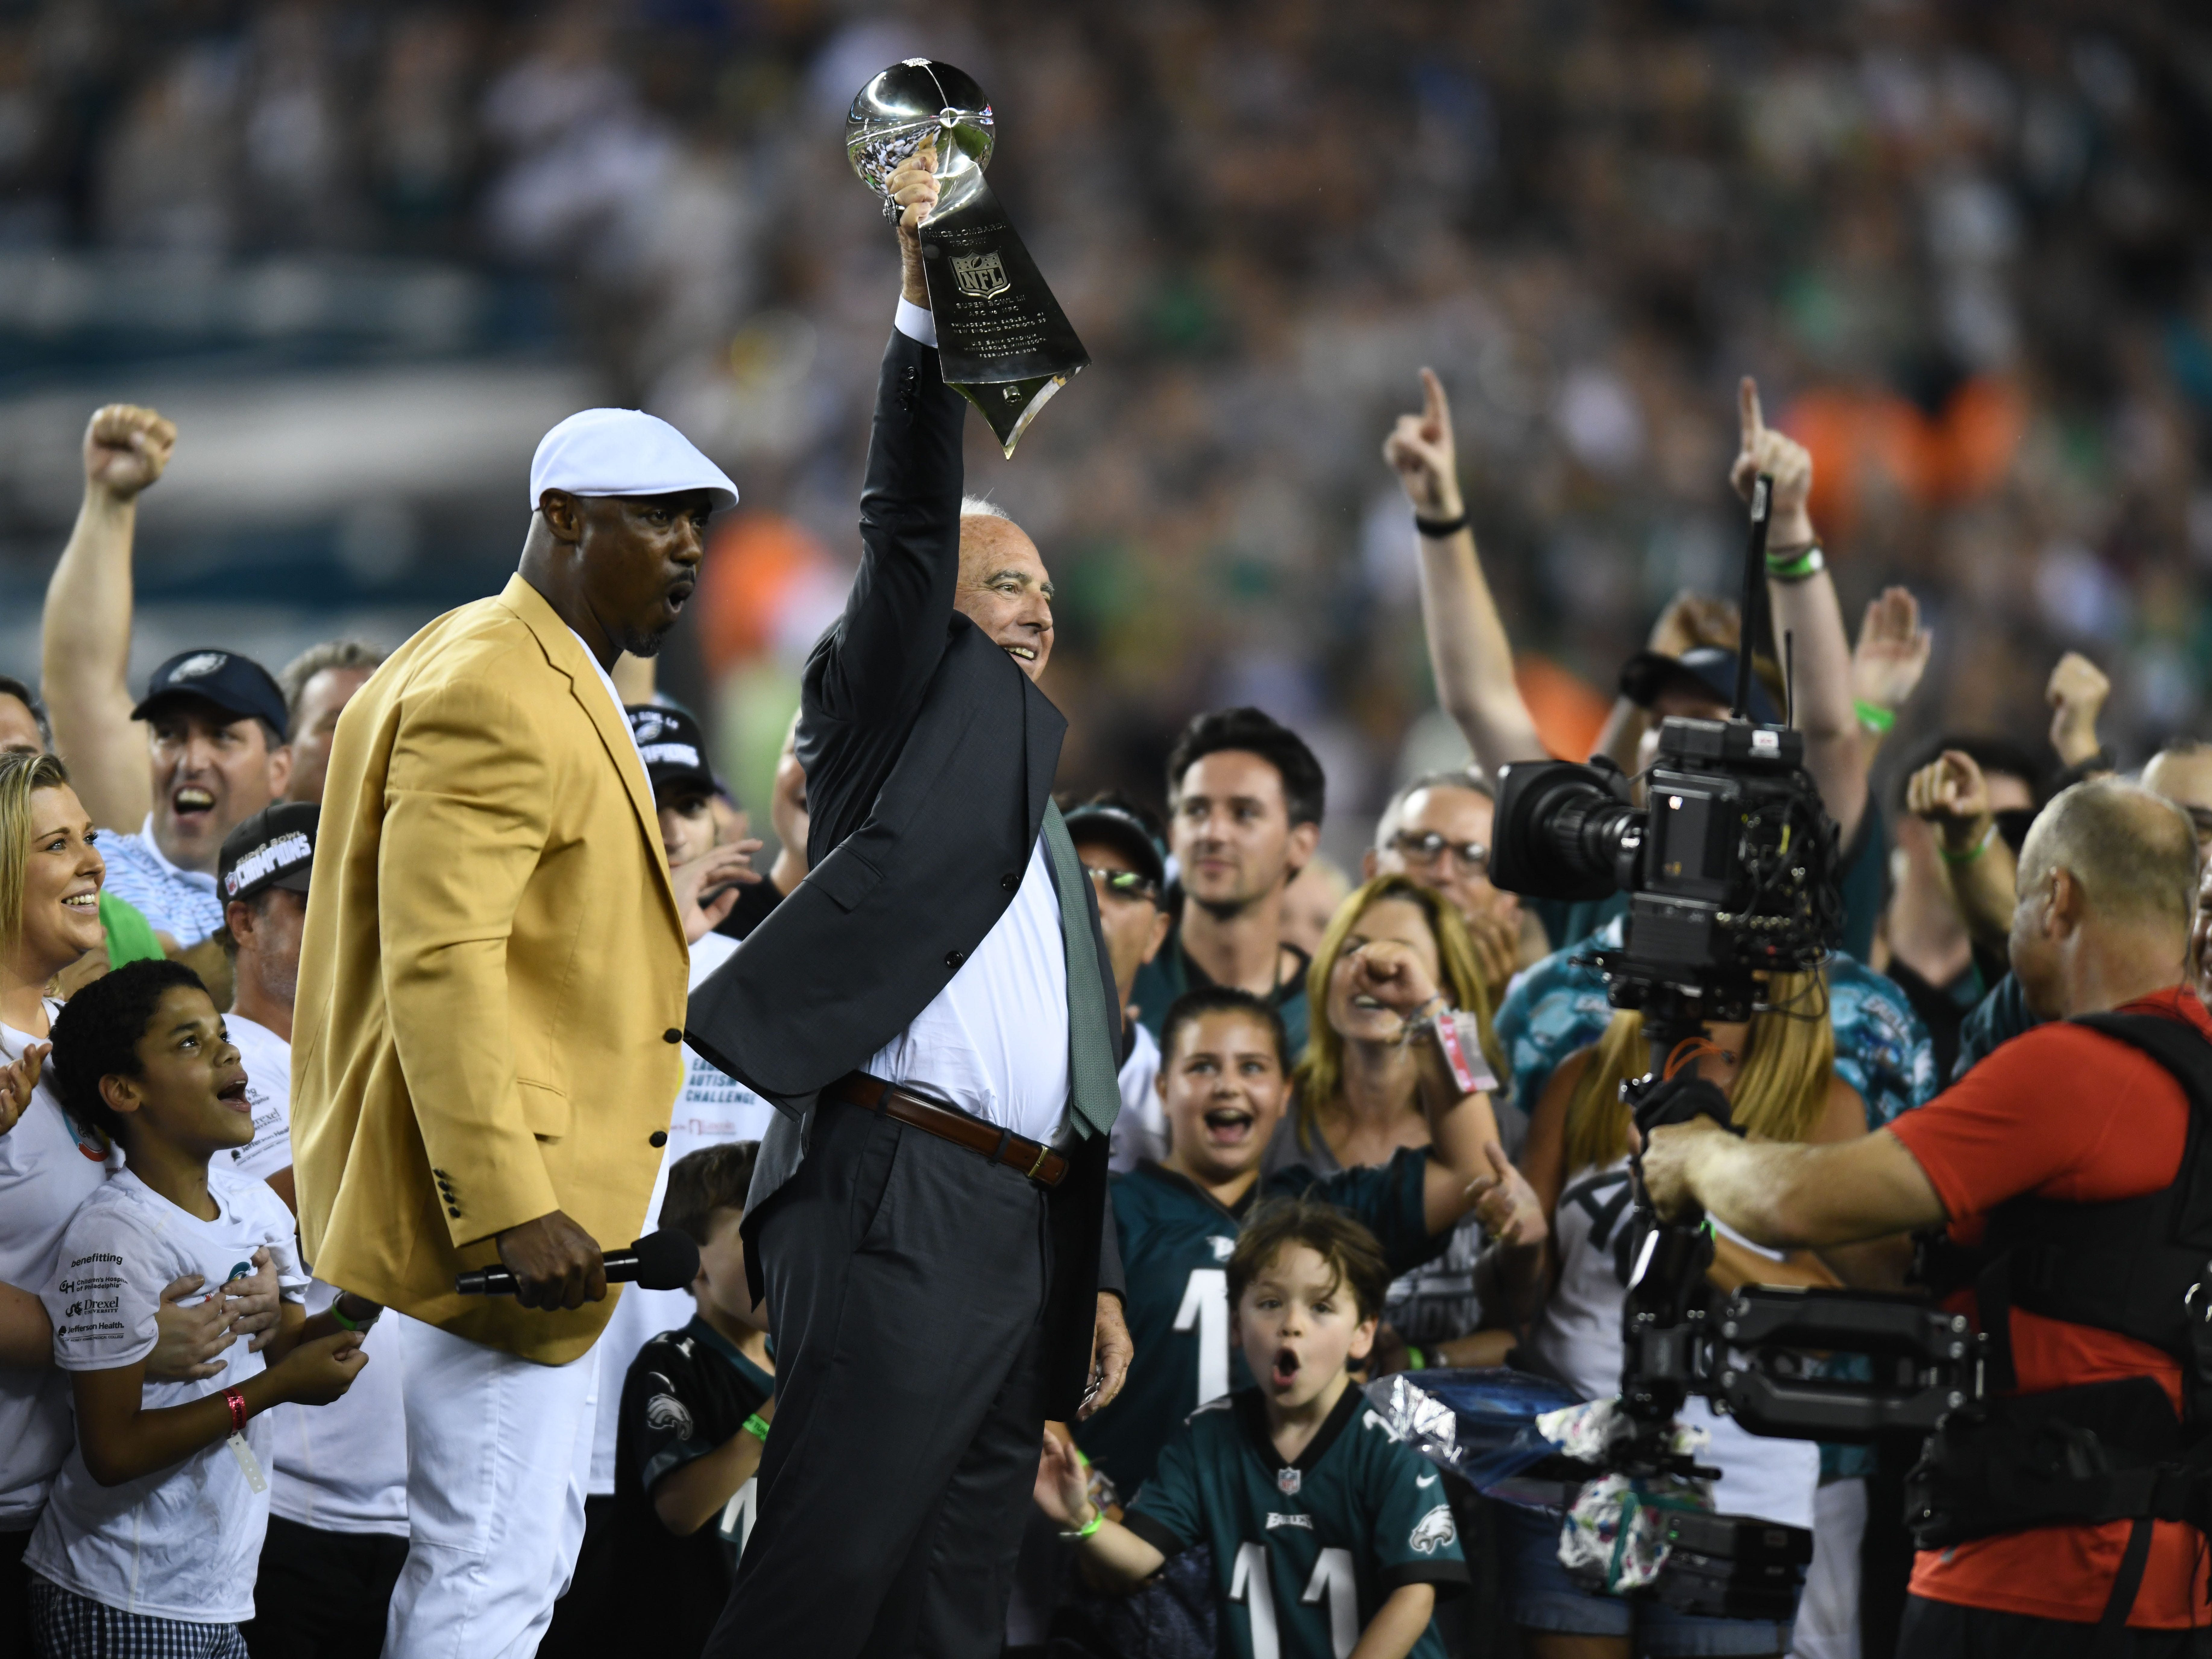 Philadelphia Eagles owner Jeffrey Lurie holds up the Lombardi Trophy as Hall of Fame safety Brian Dawkins reacts during the pregame celebration of the Super Bowl LII championship at Lincoln Financial Field.